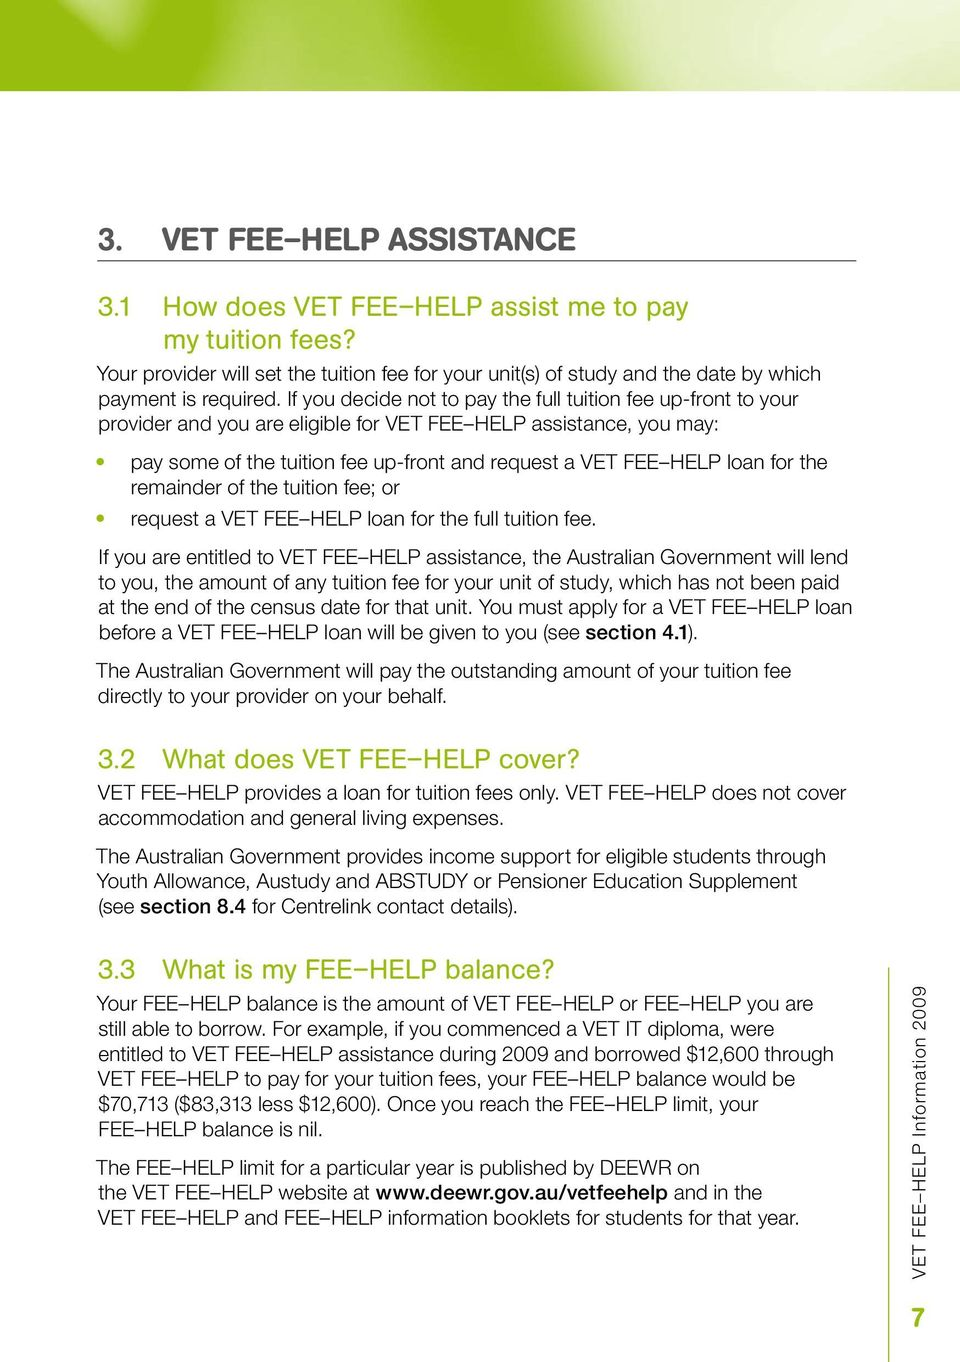 for the remainder of the tuition fee; or request a VET FEE HELP loan for the full tuition fee.